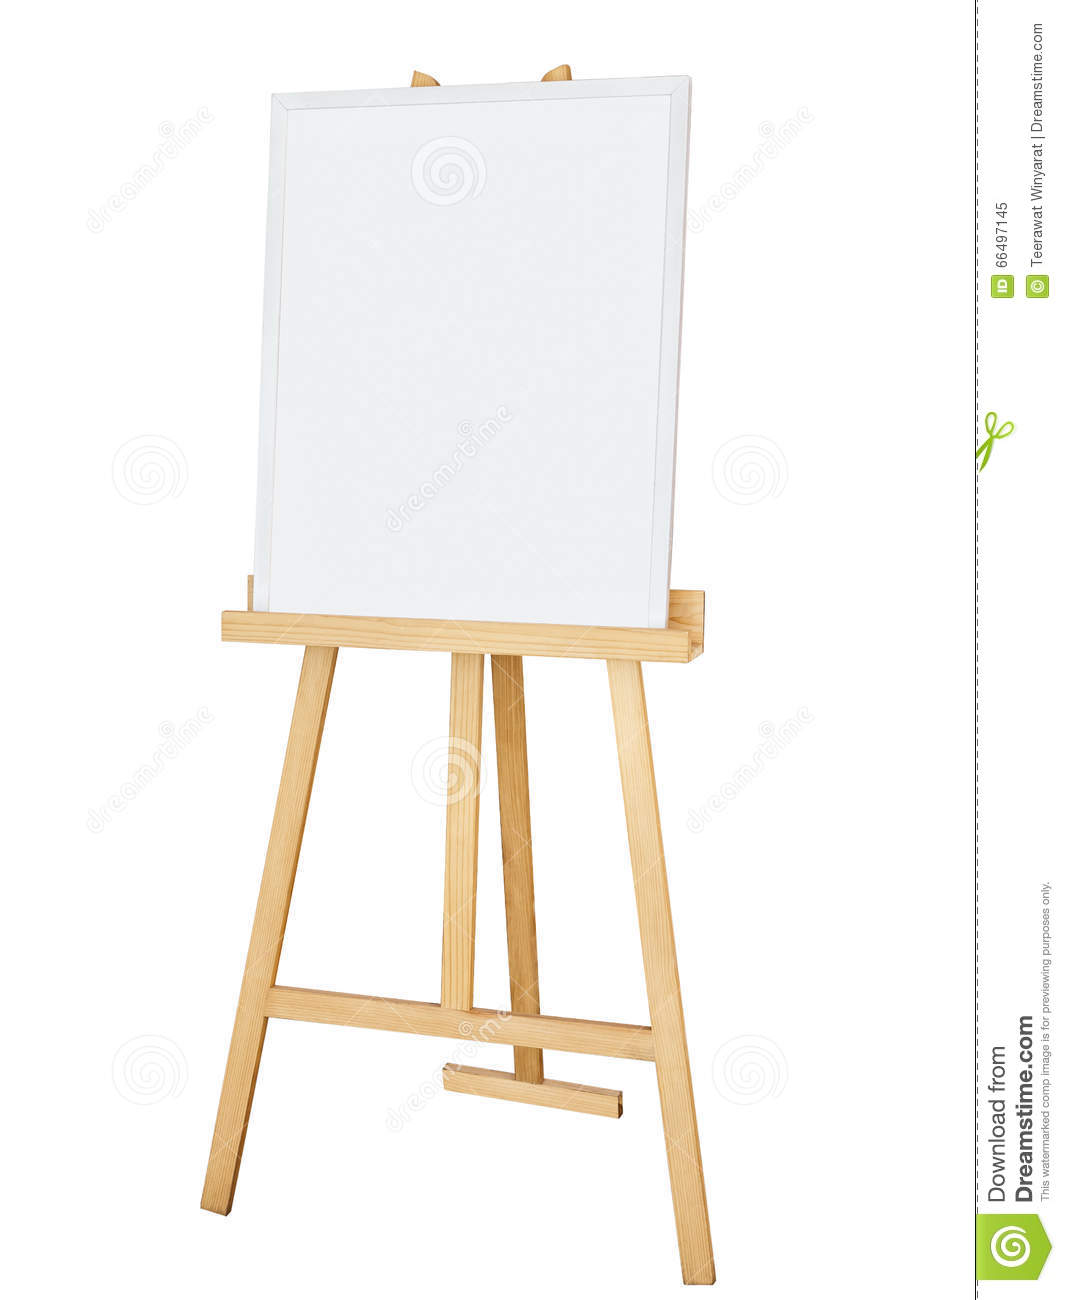 Painting Canvas Painting Stand Wooden Easel With Blank Canvas Poster Sign Board